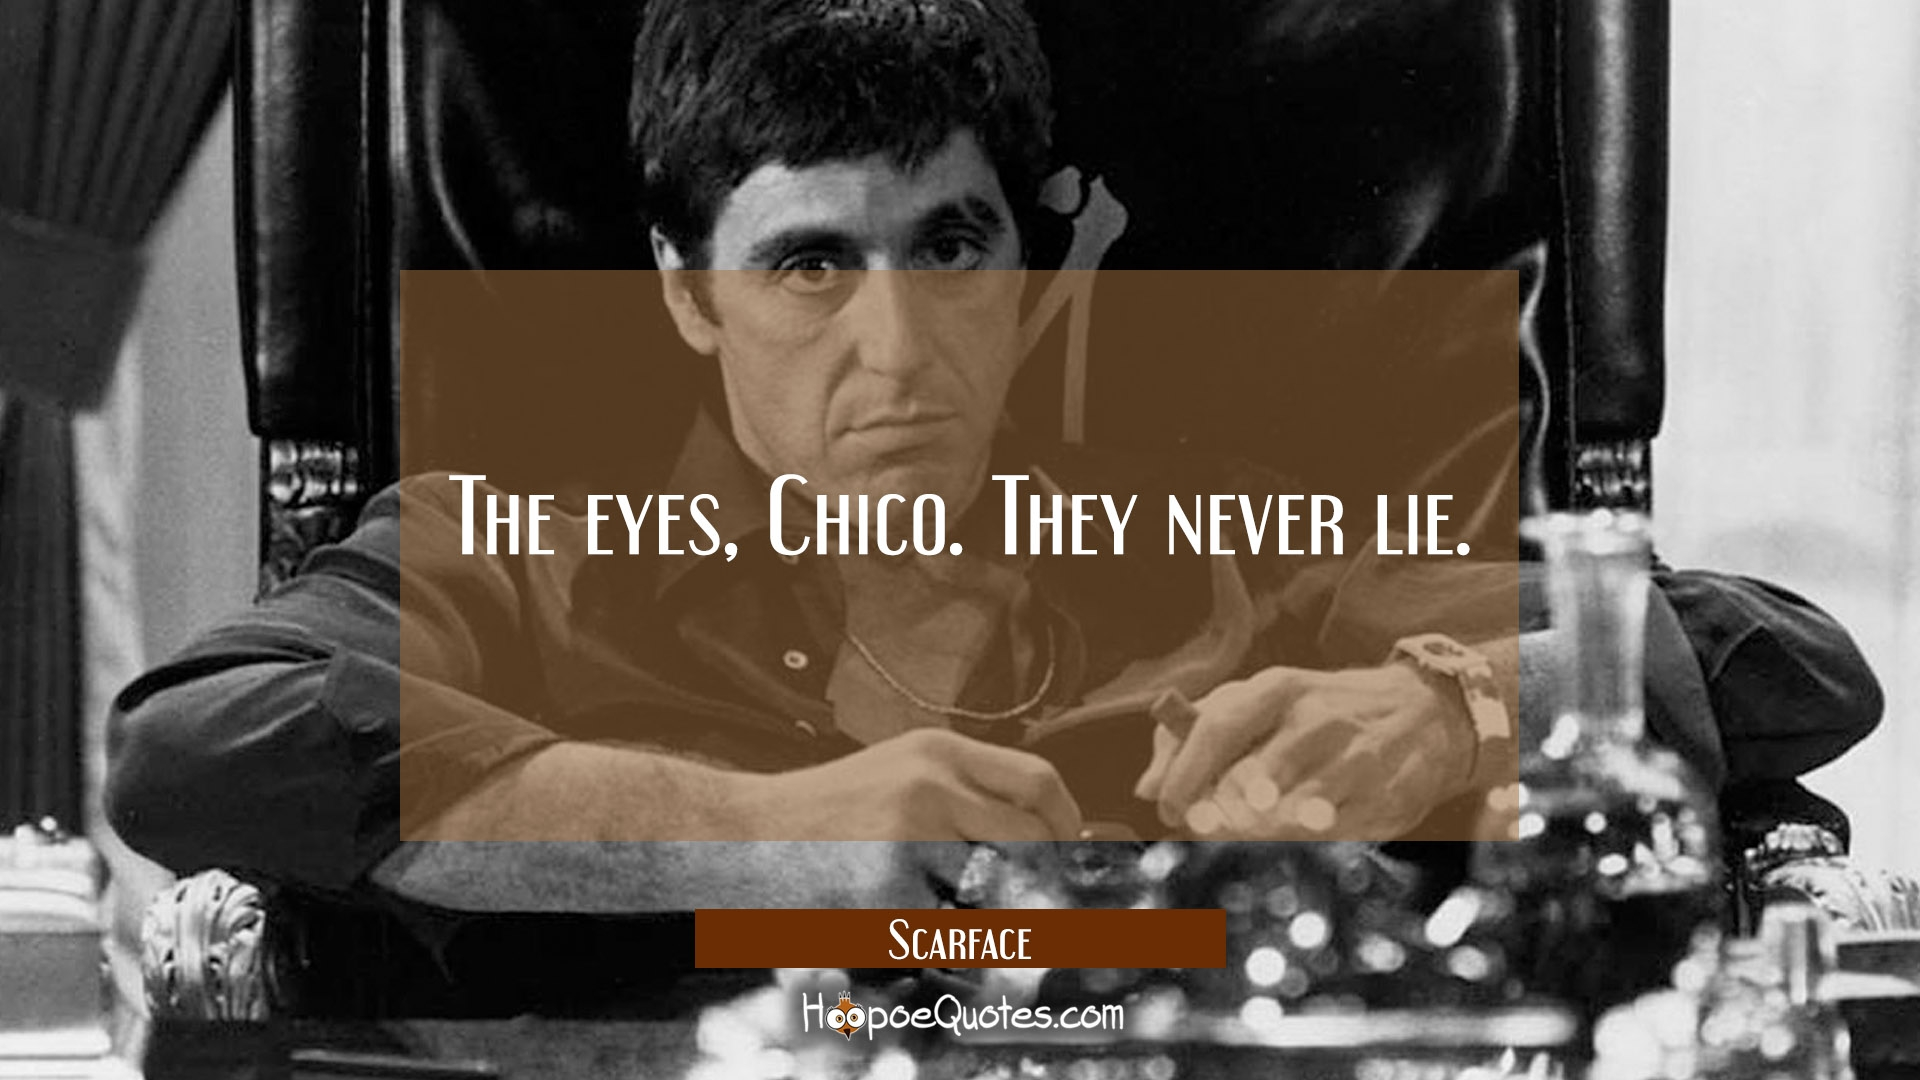 Birthday Wallpaper With Quotes Download The Eyes Chico They Never Lie Hoopoequotes